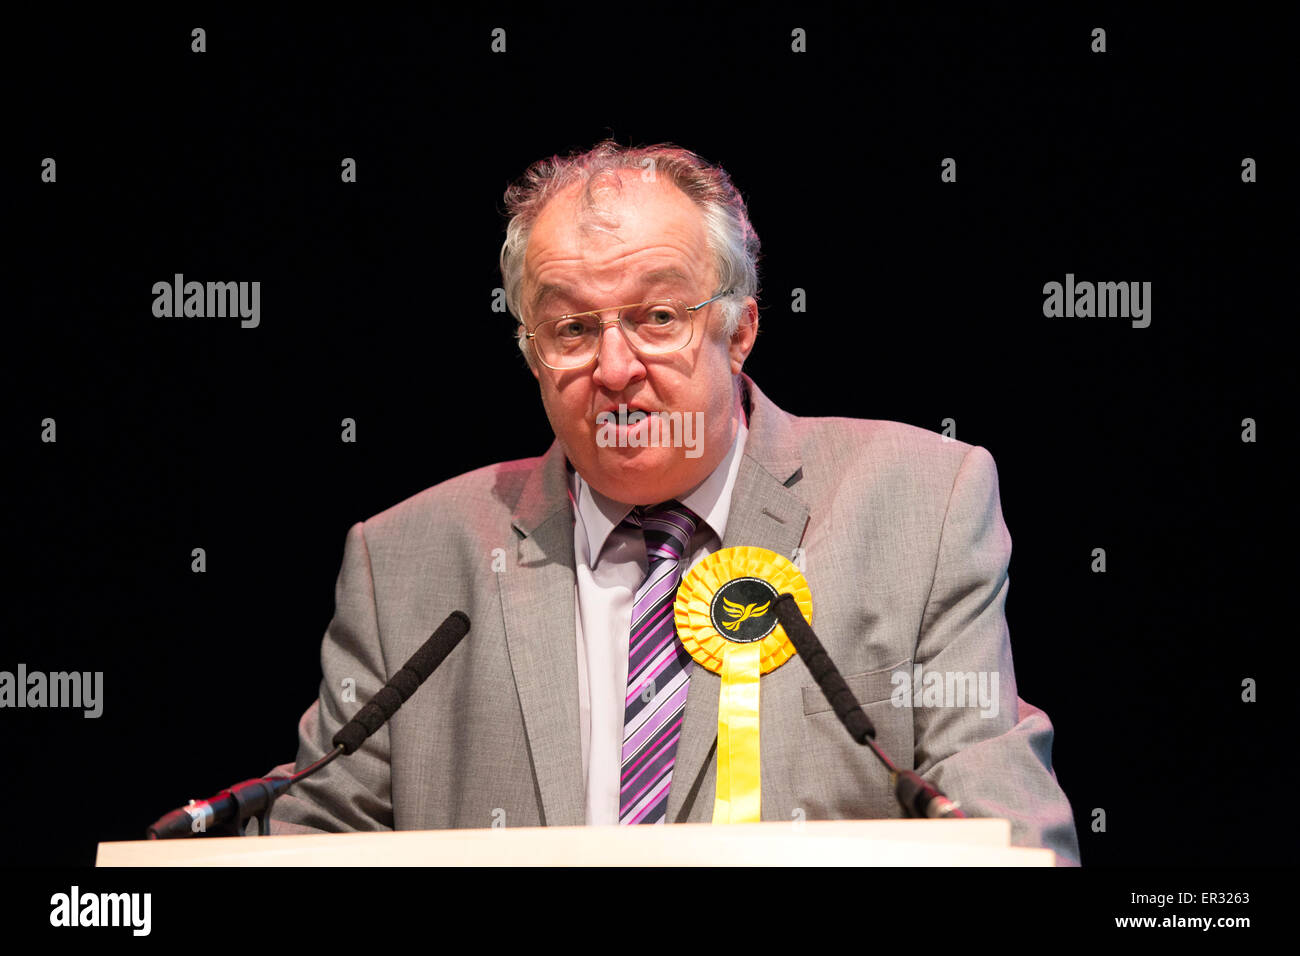 Liberal Democrat John Hemming pictured at the General Election count at the ICC Birmingham where he lost his seat. - Stock Image